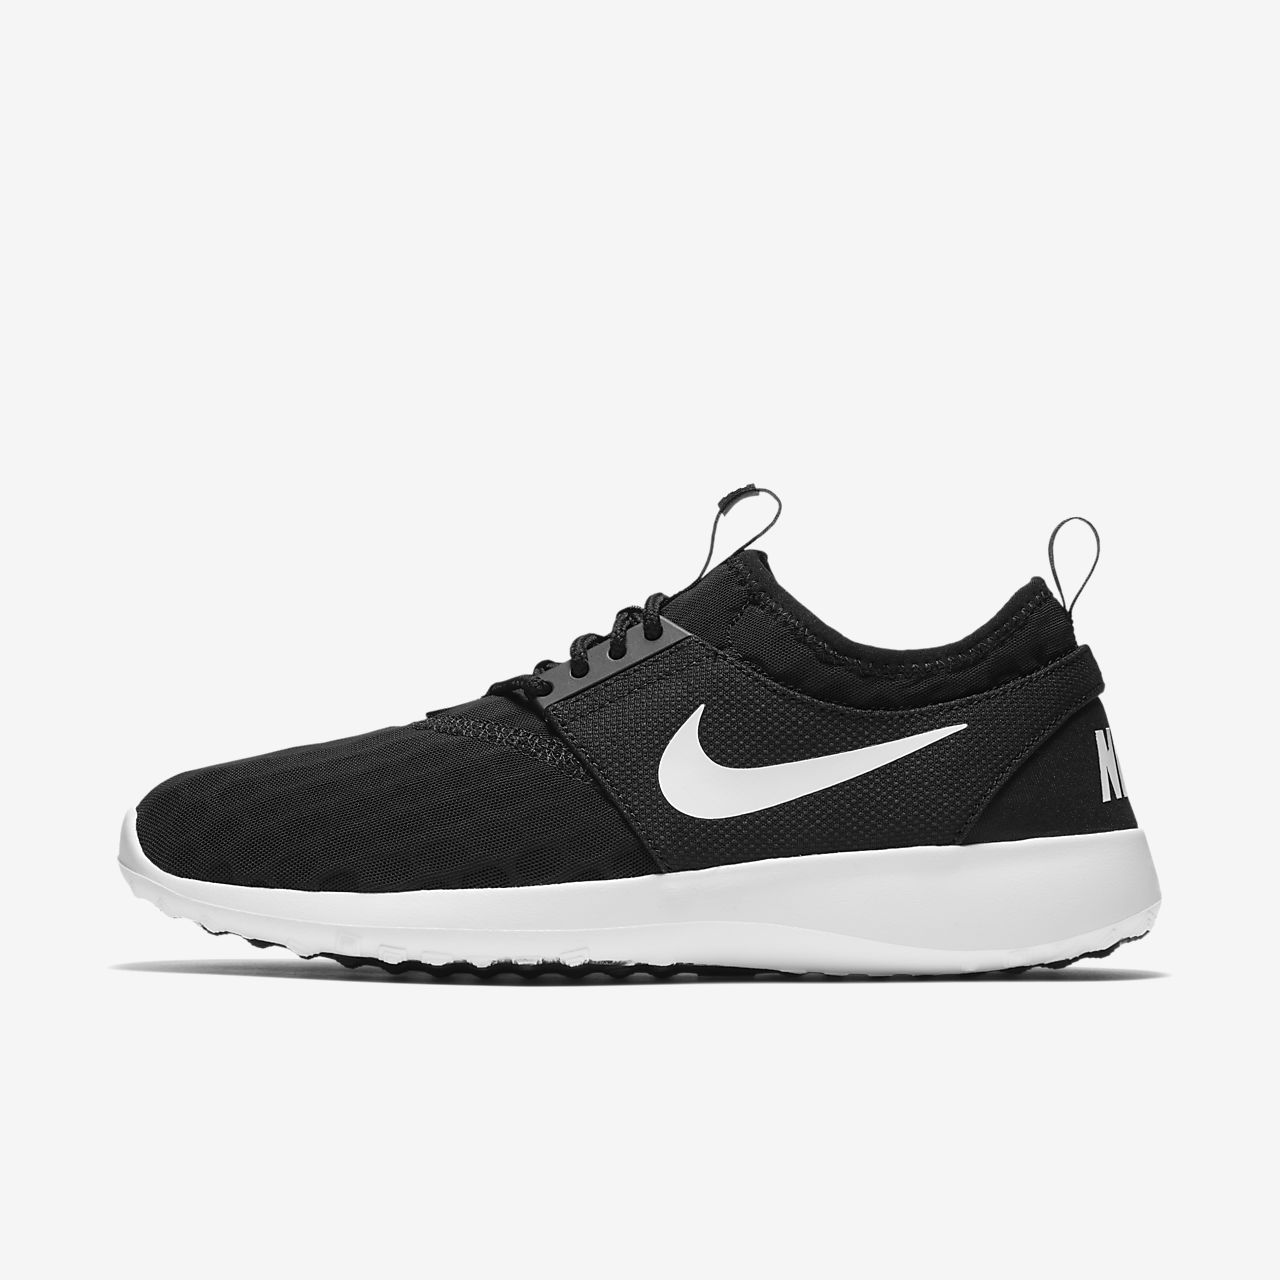 15d7b26f10f3a Nike Juvenate Women's Shoe. Nike.com